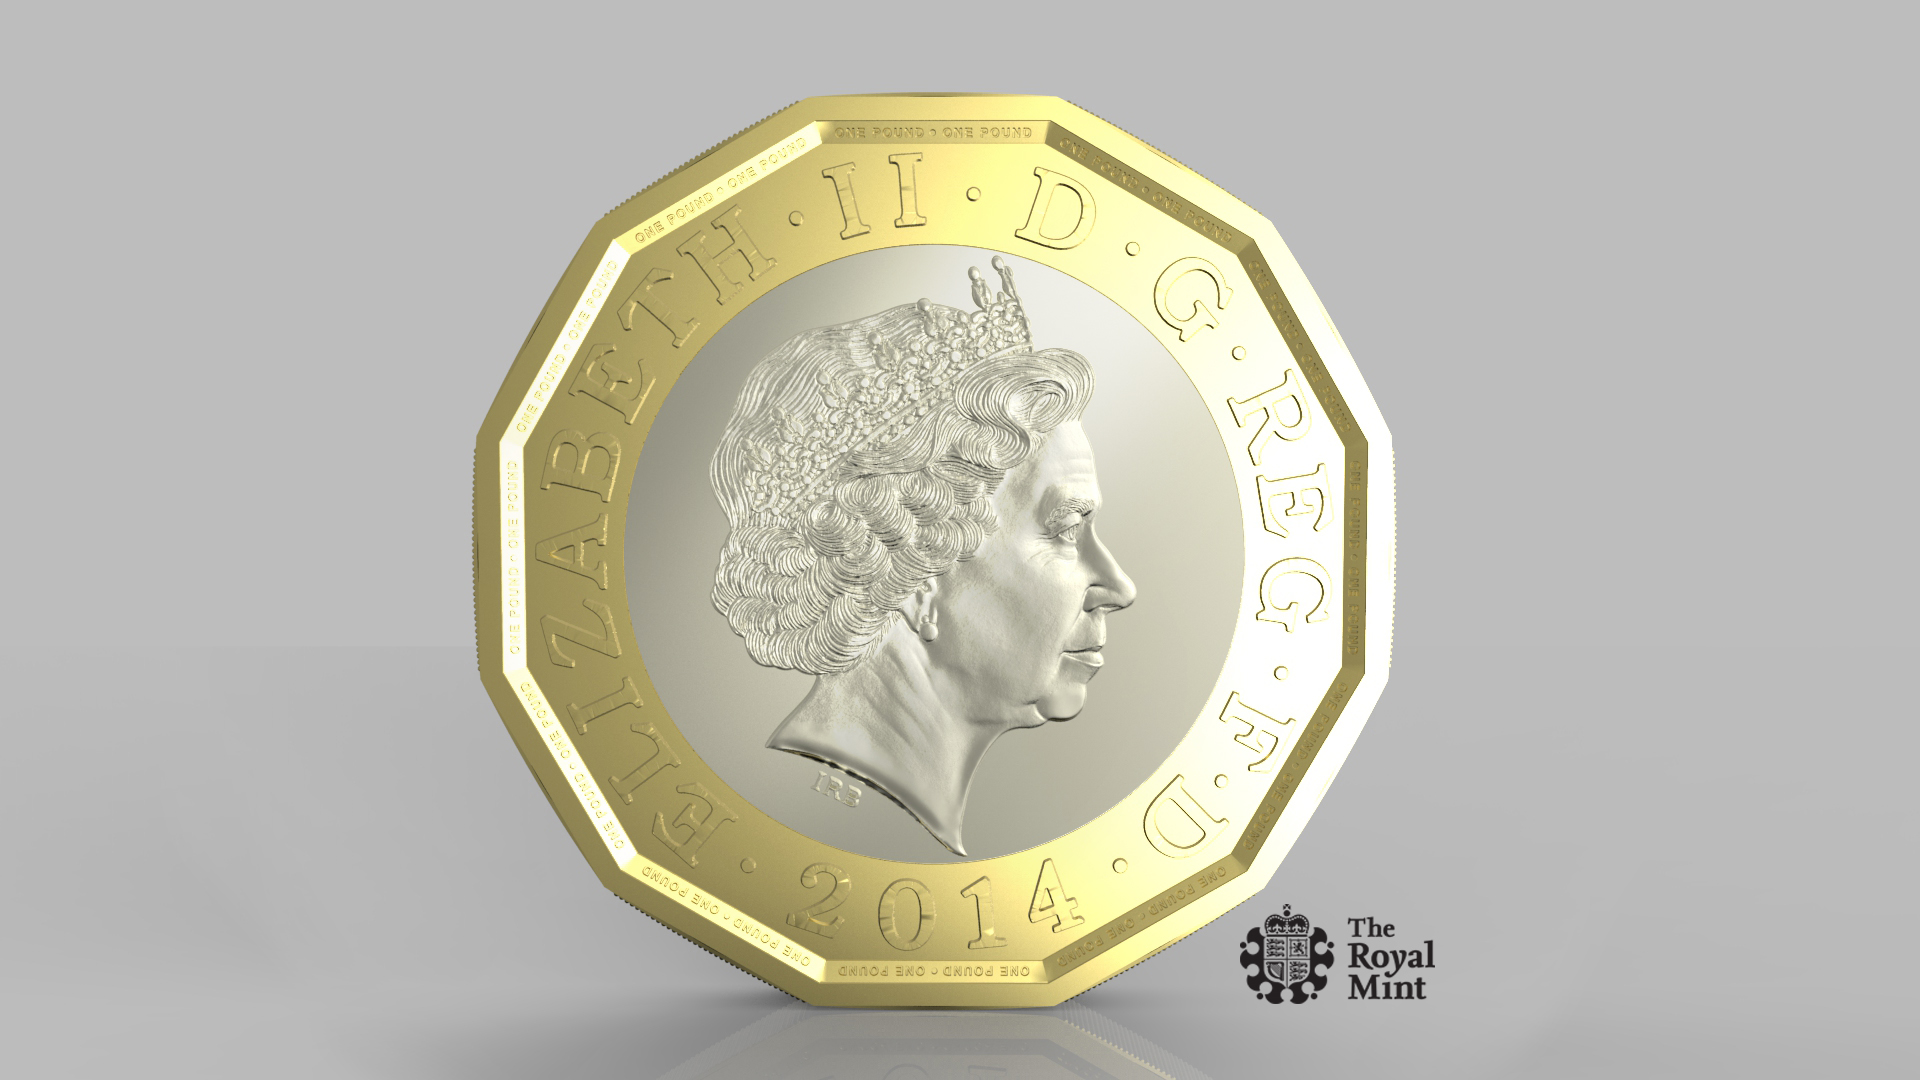 new £1 coin design